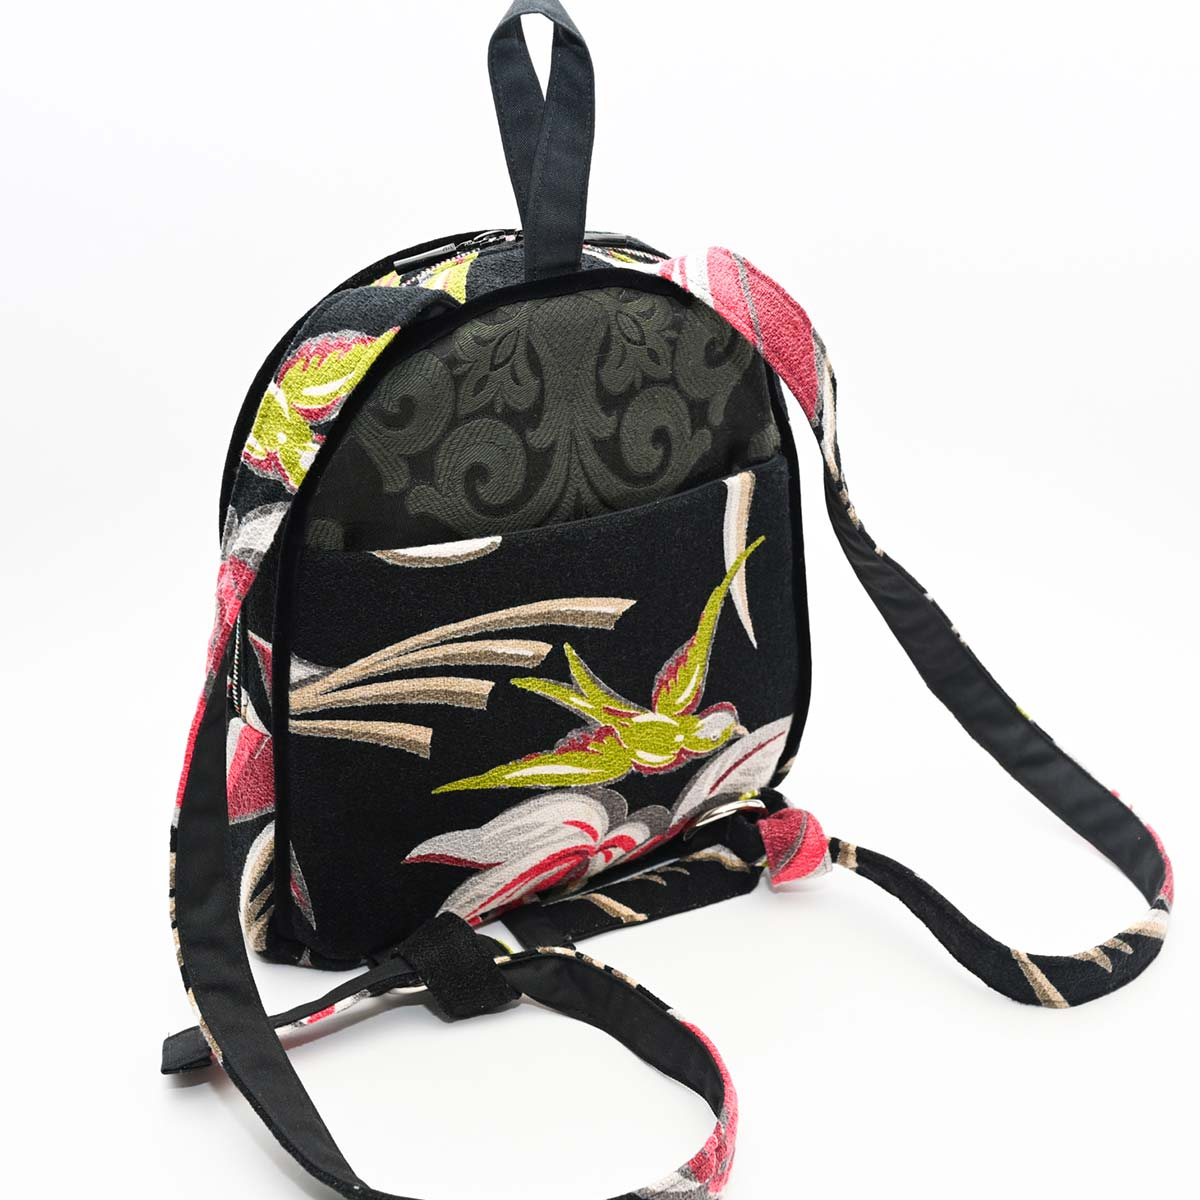 backpack palm bird motif pn black DSC 6423